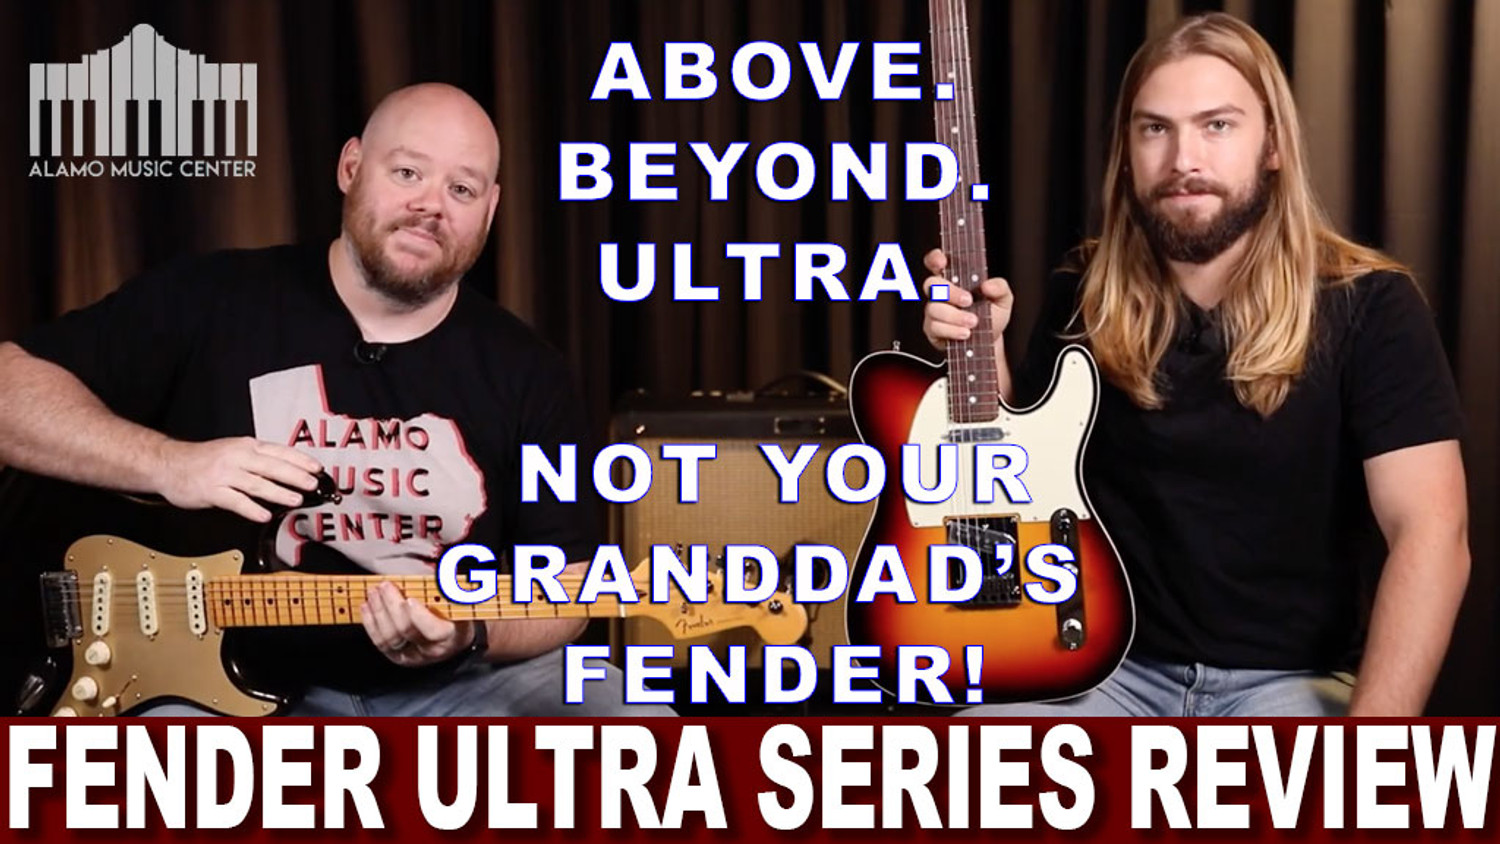 Fender Ultra Series Review: Fender Moves Above and Beyond Elite with the Ultra!